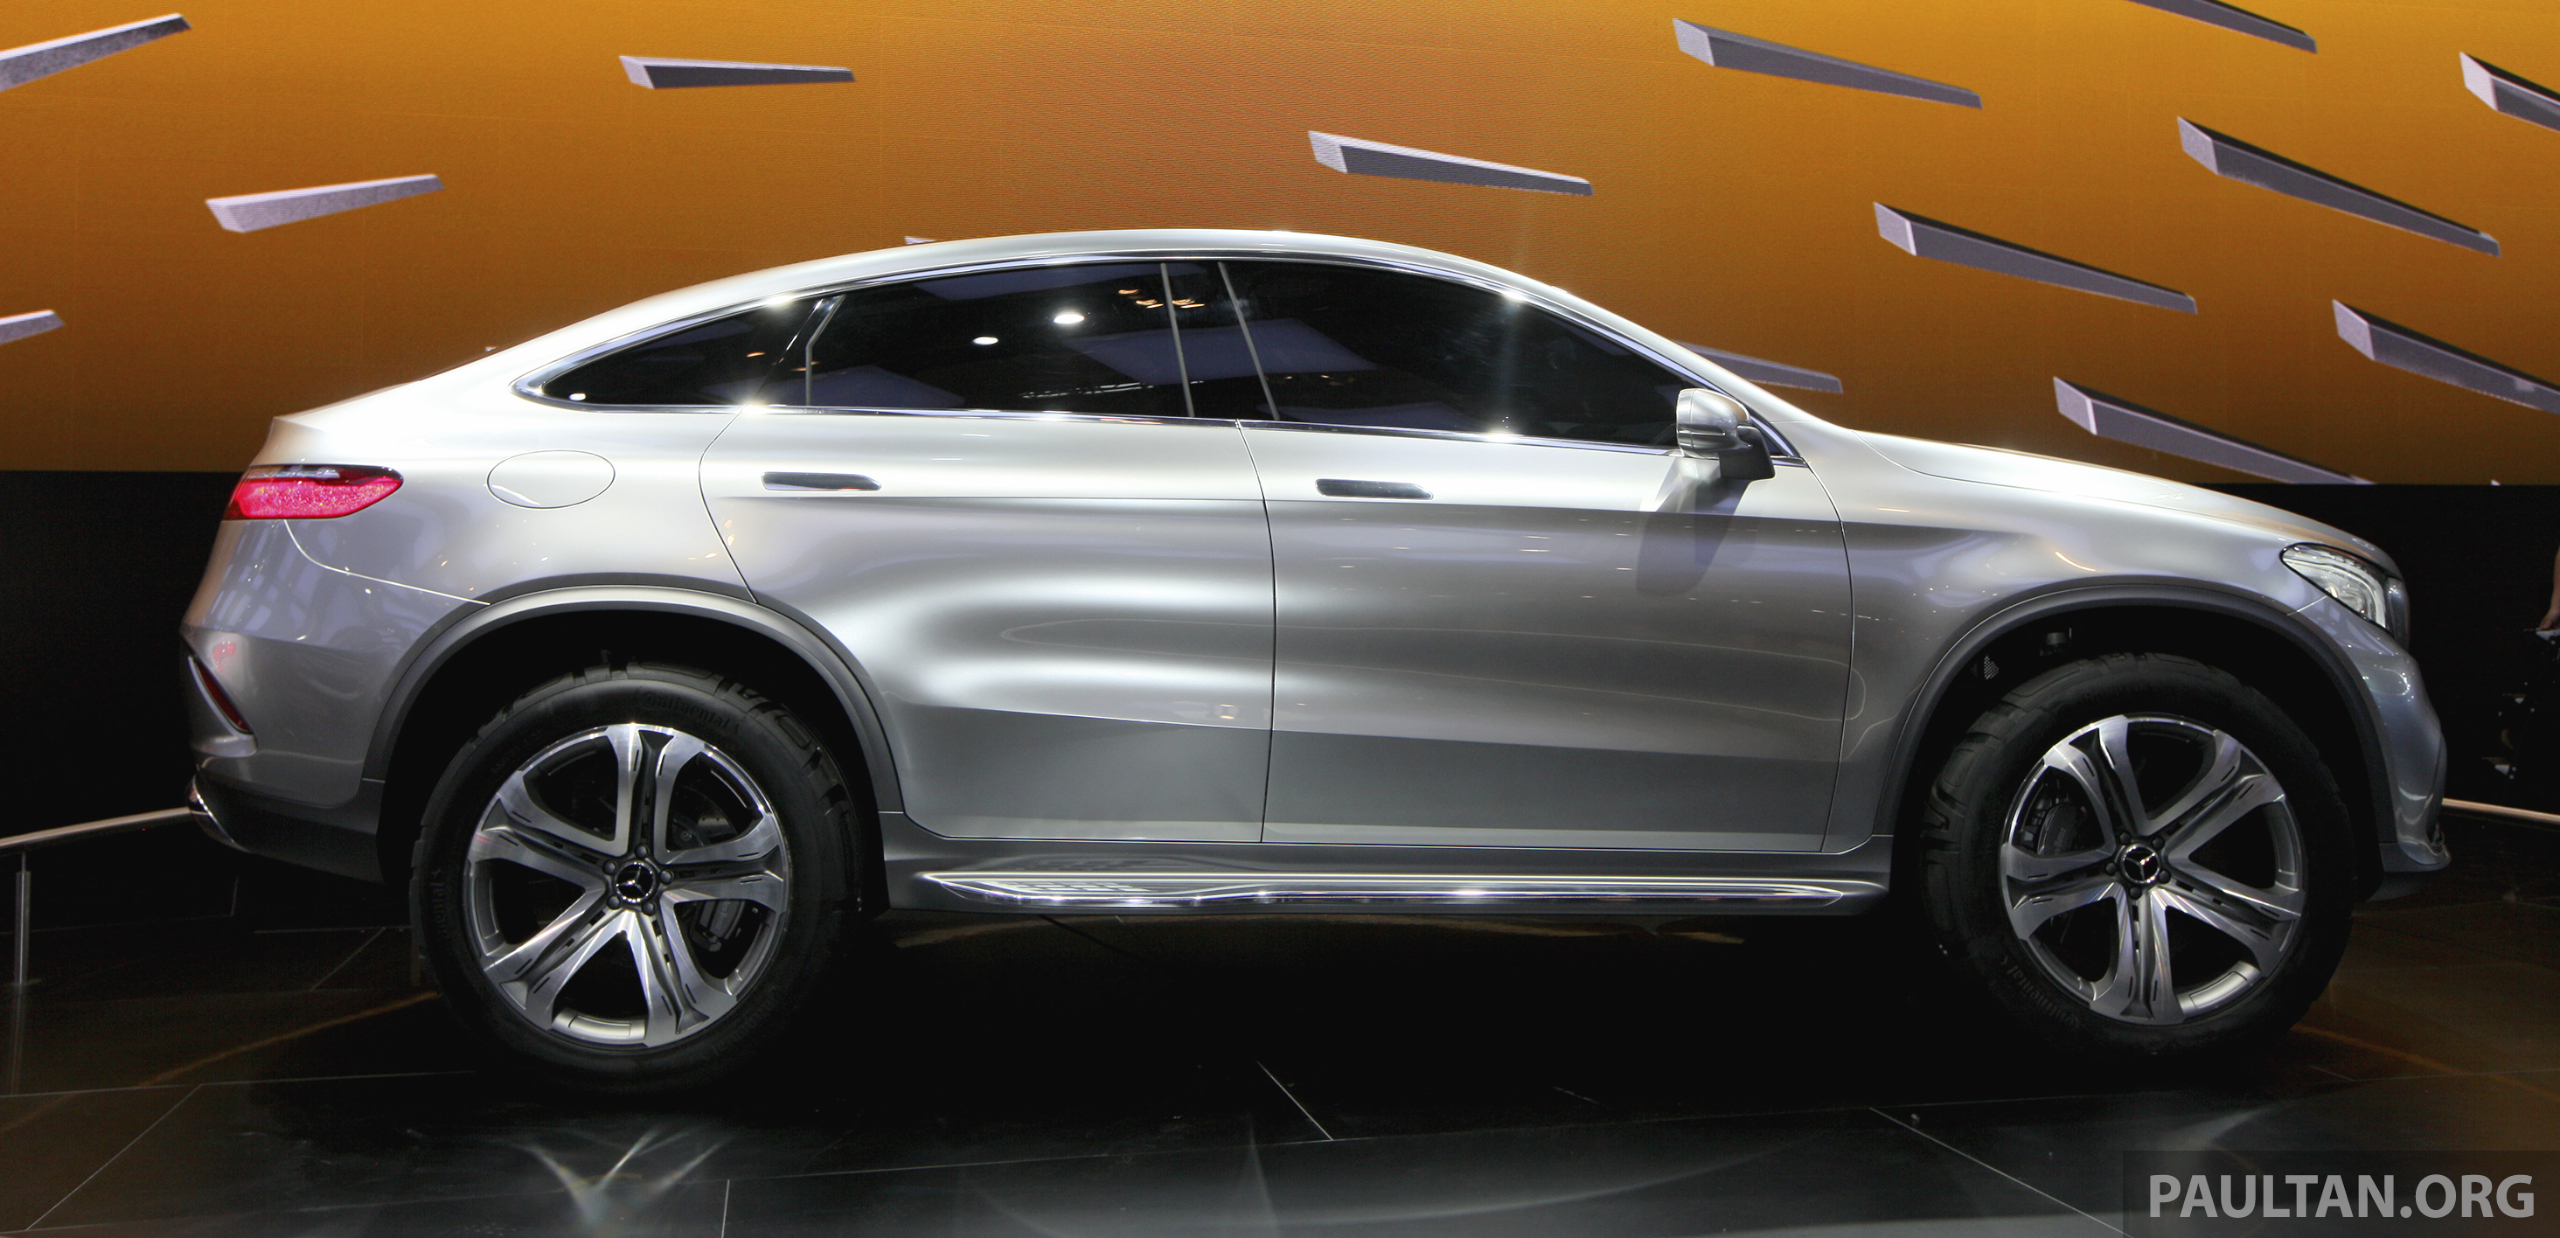 Mercedes benz coupe suv concept previews x6 rival image 242816 for Mercedes benz sport suv